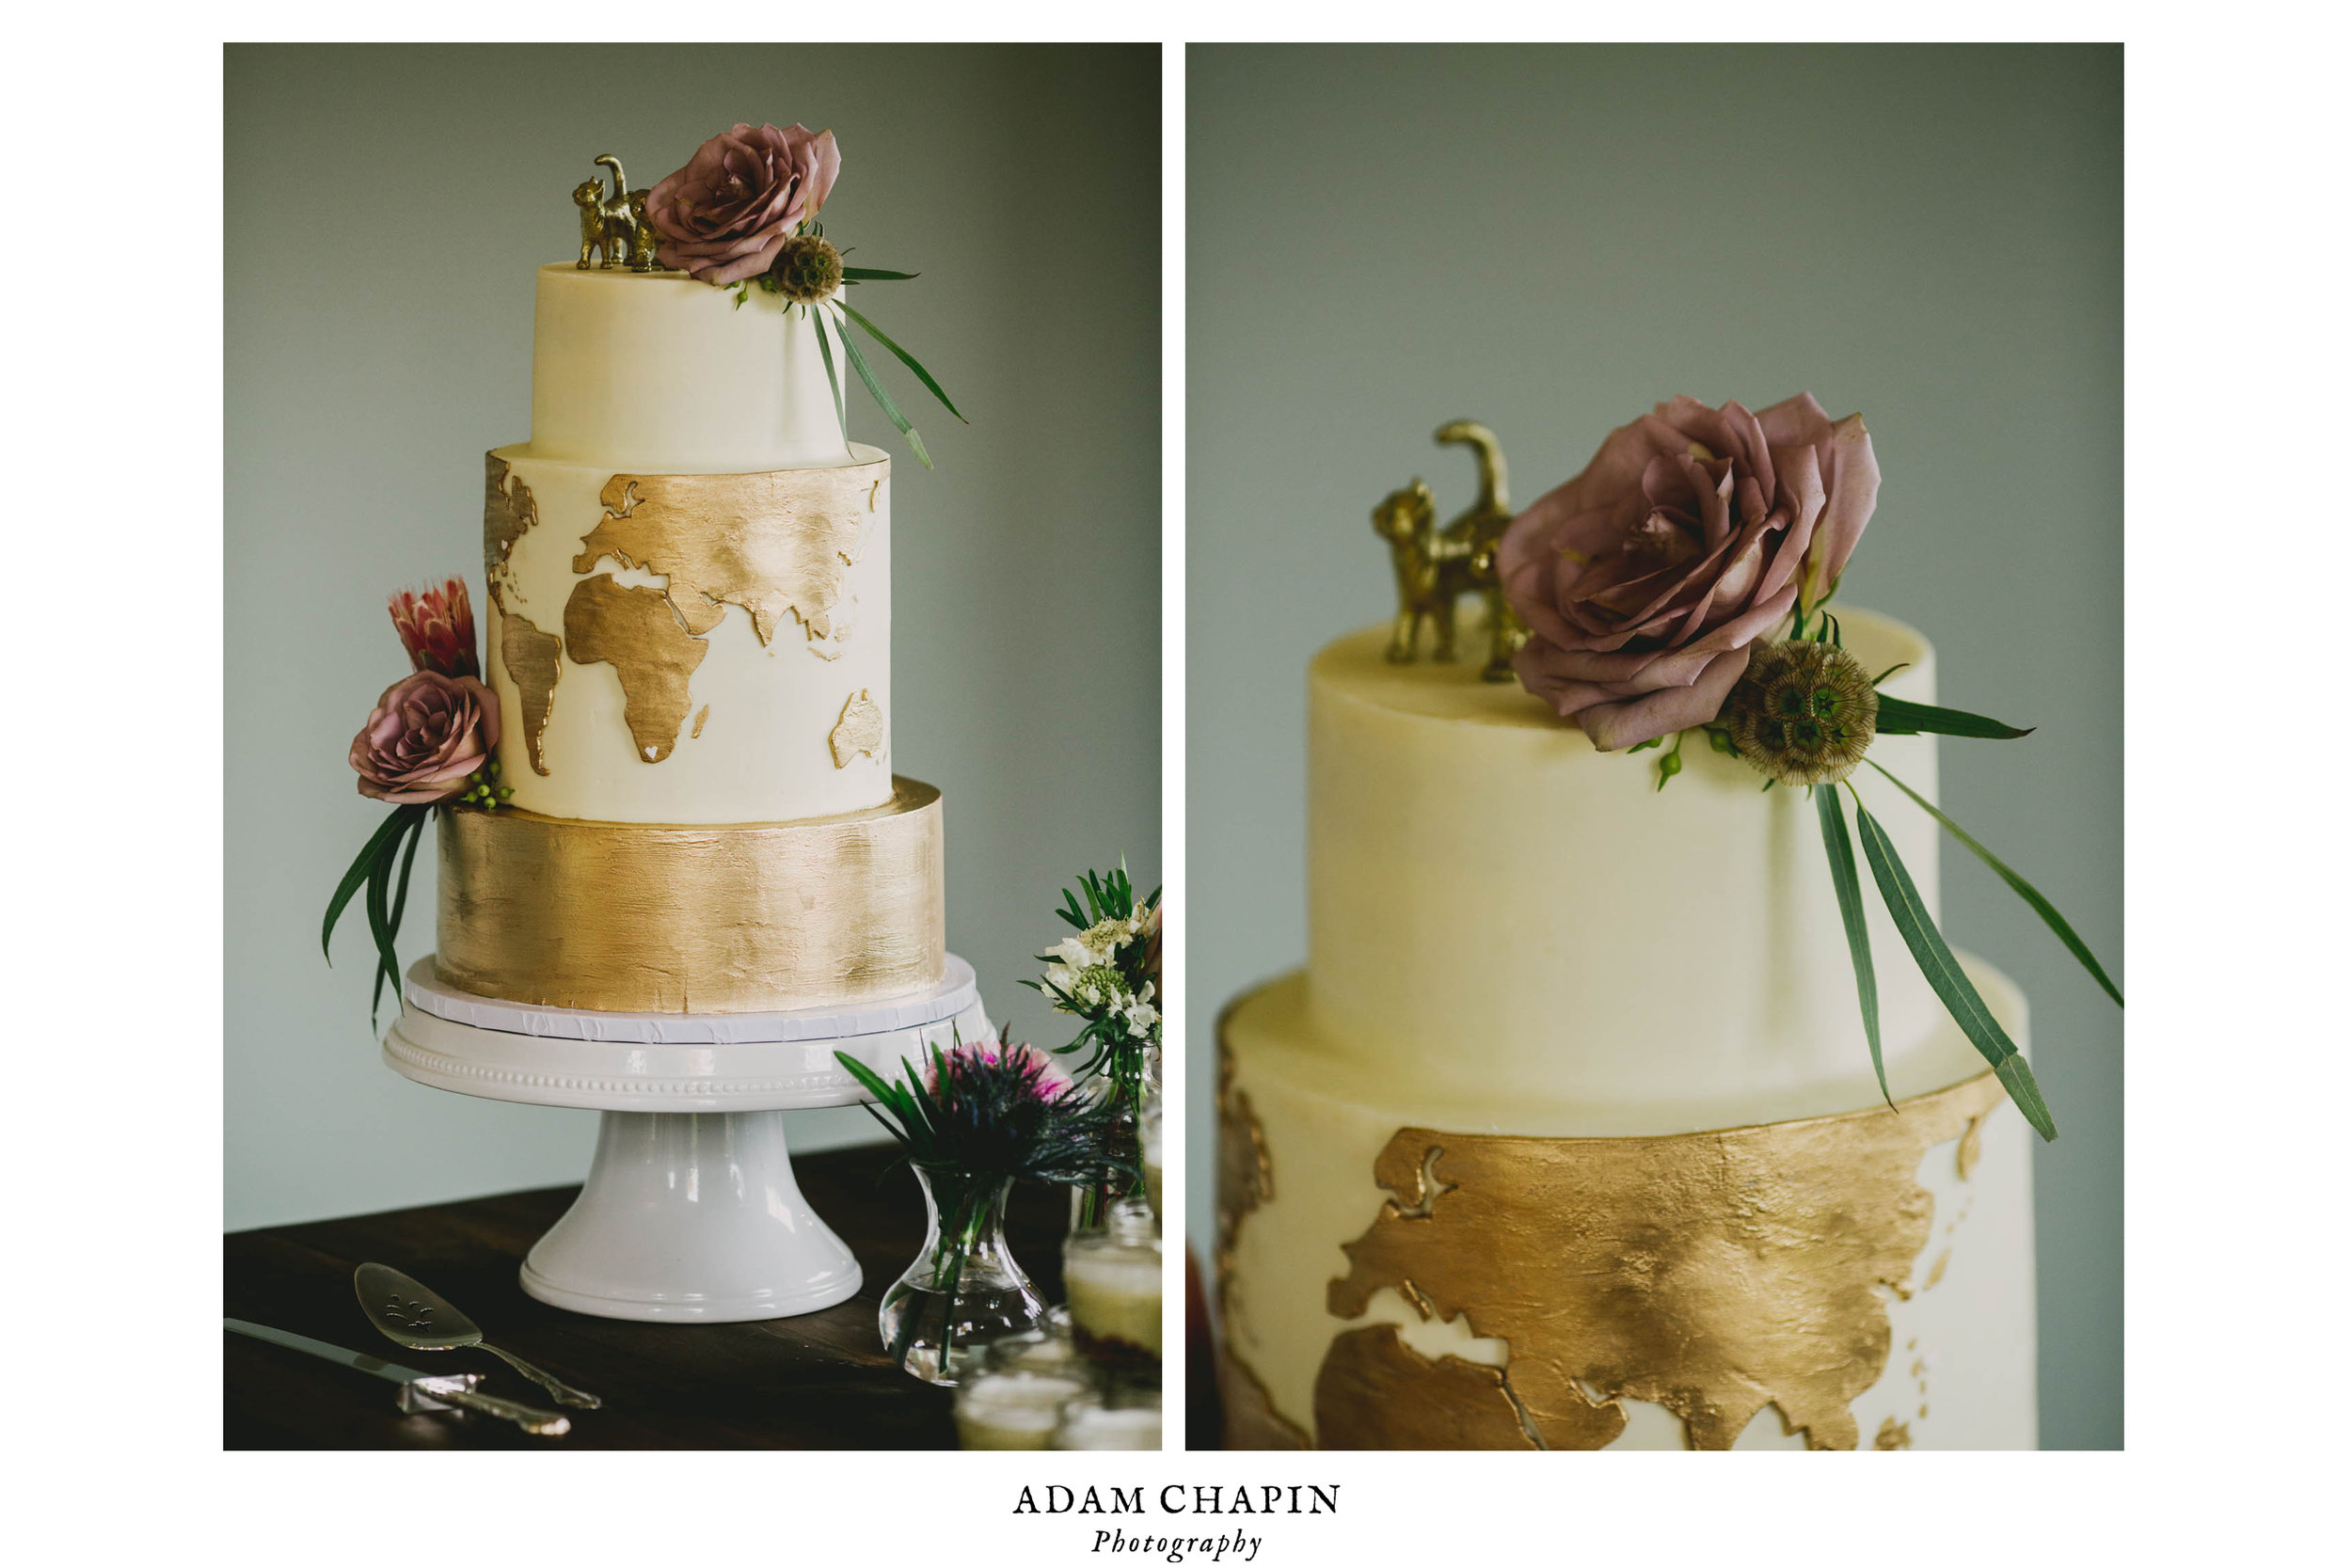 beautiful wedding cake details with cat and bear statues on top